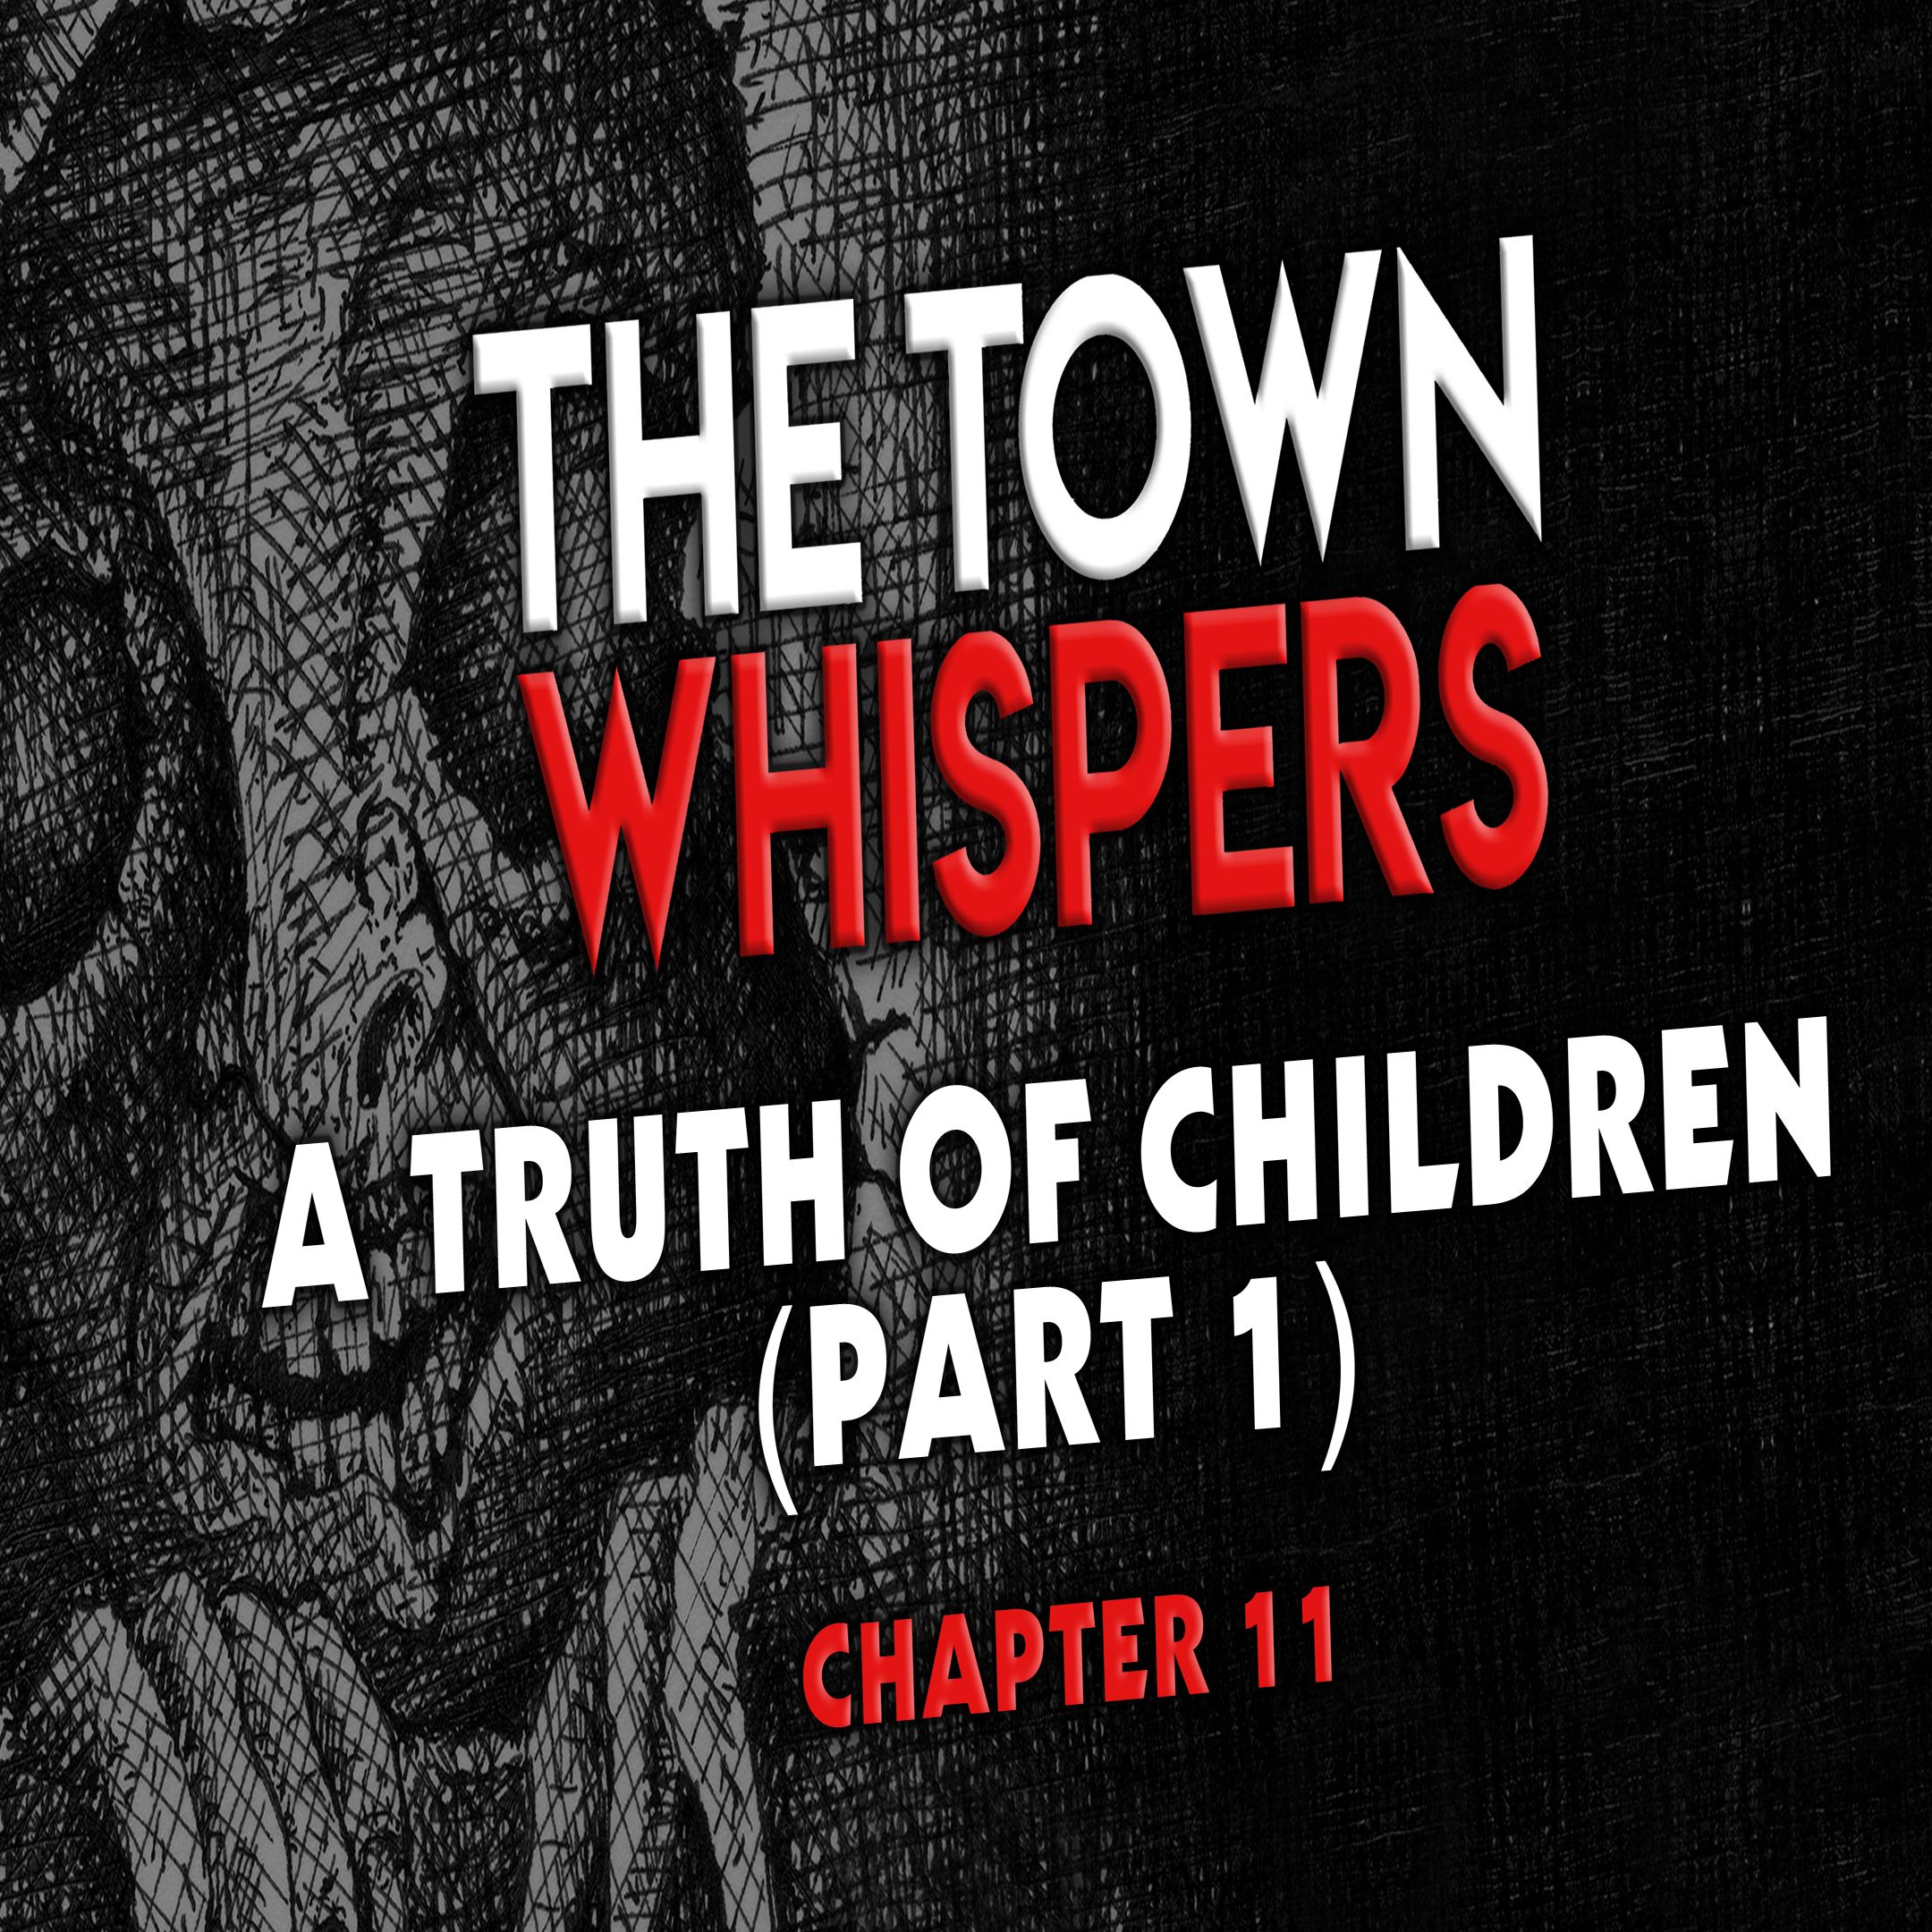 Chapter 11: A Truth of Children (Part 1)